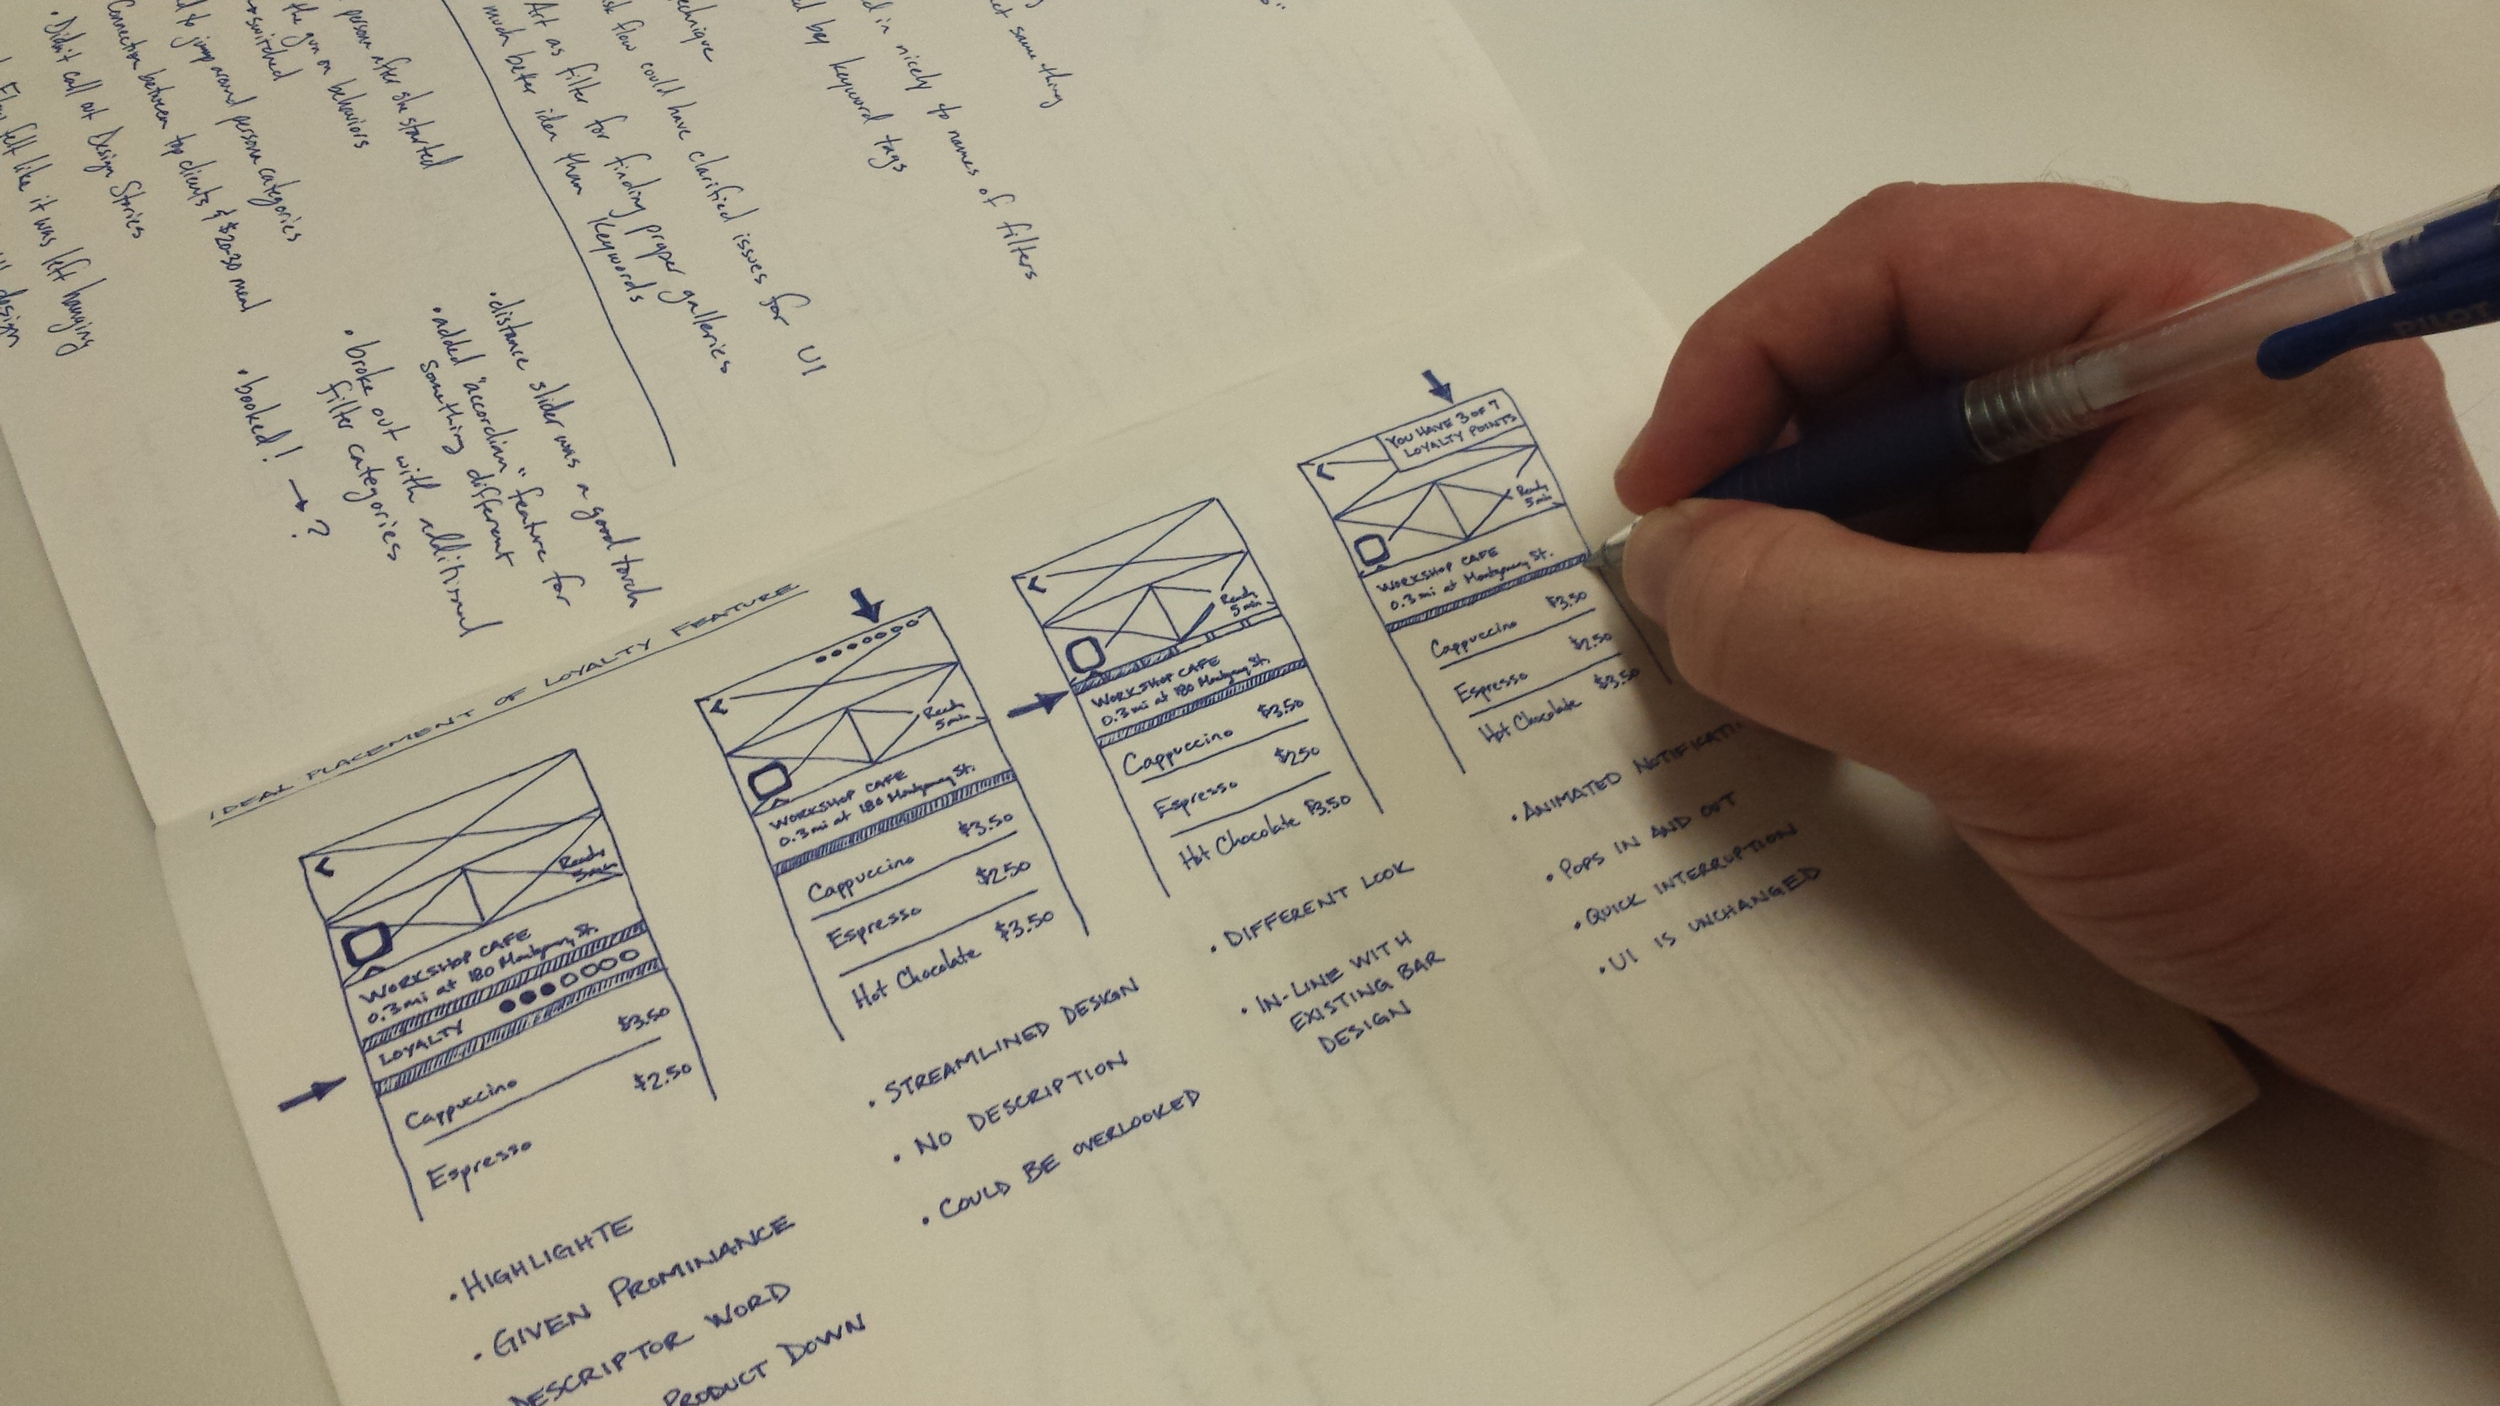 Holding the pen so close to the page provides the control necessary for very detailed drawings.